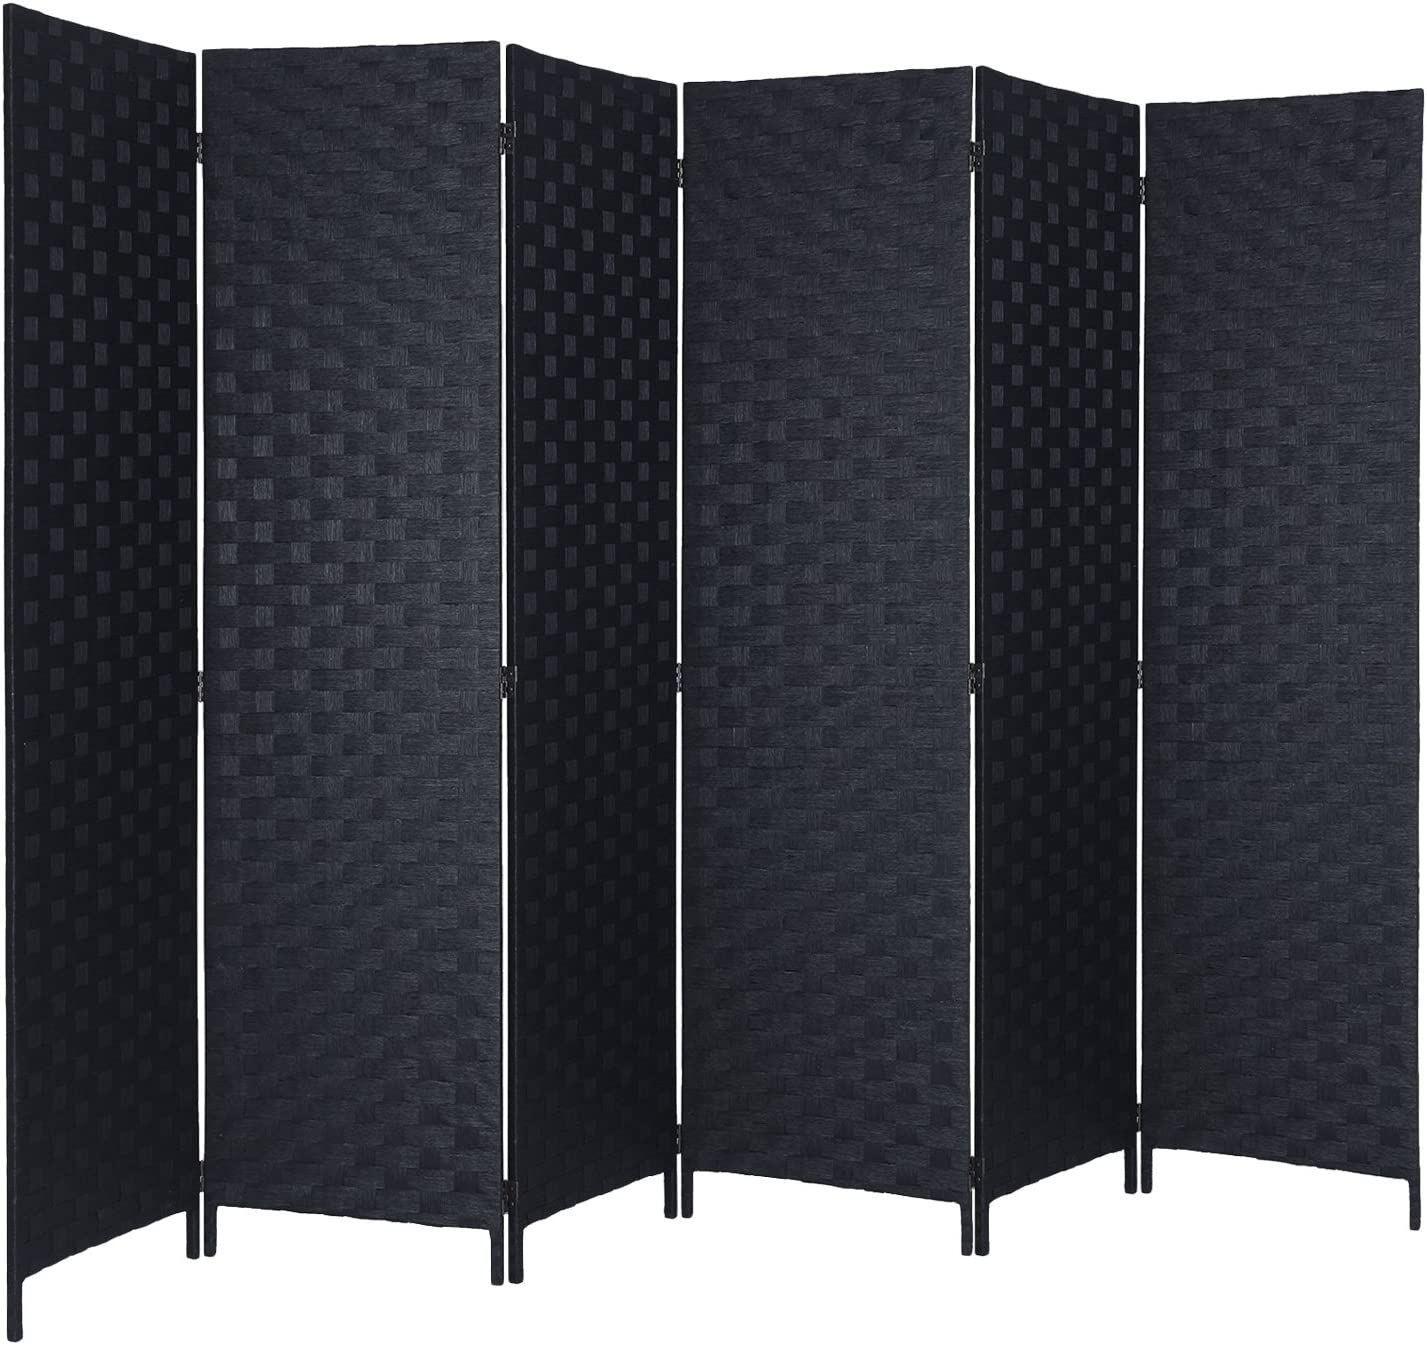 Amazon Com Rhf 6 Ft Tall Room Dividers Double Side Woven Fiber Room Divider Better Privacy Screen Folding Partition Wall Divider Space Seperate Indoor Decorative 6 Panel Screen Freestanding Black 6 Panel Furniture Decor